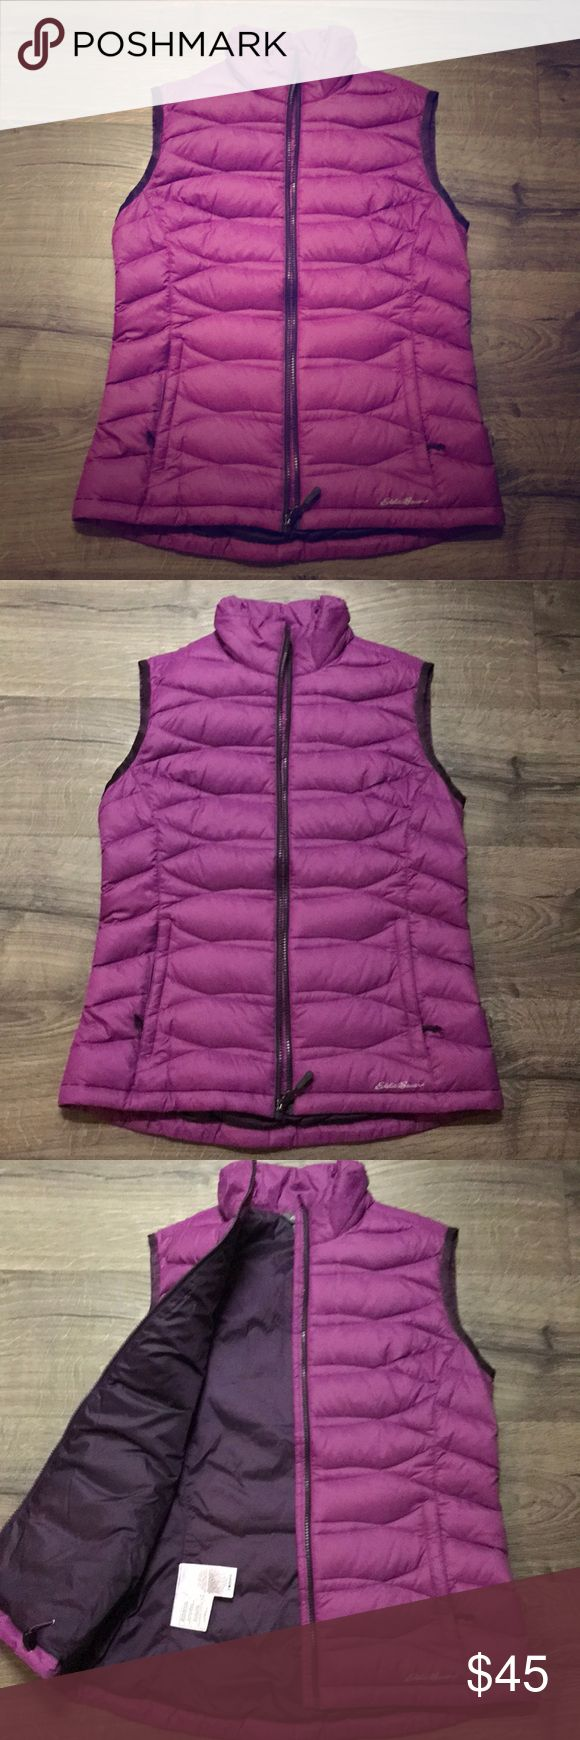 Eddie Bauer down vest Nylon vest with 80% down fill, collar is polyester fill. Pinky/purple outer with plum lining, piping and zipper Eddie Bauer Jackets & Coats Vests